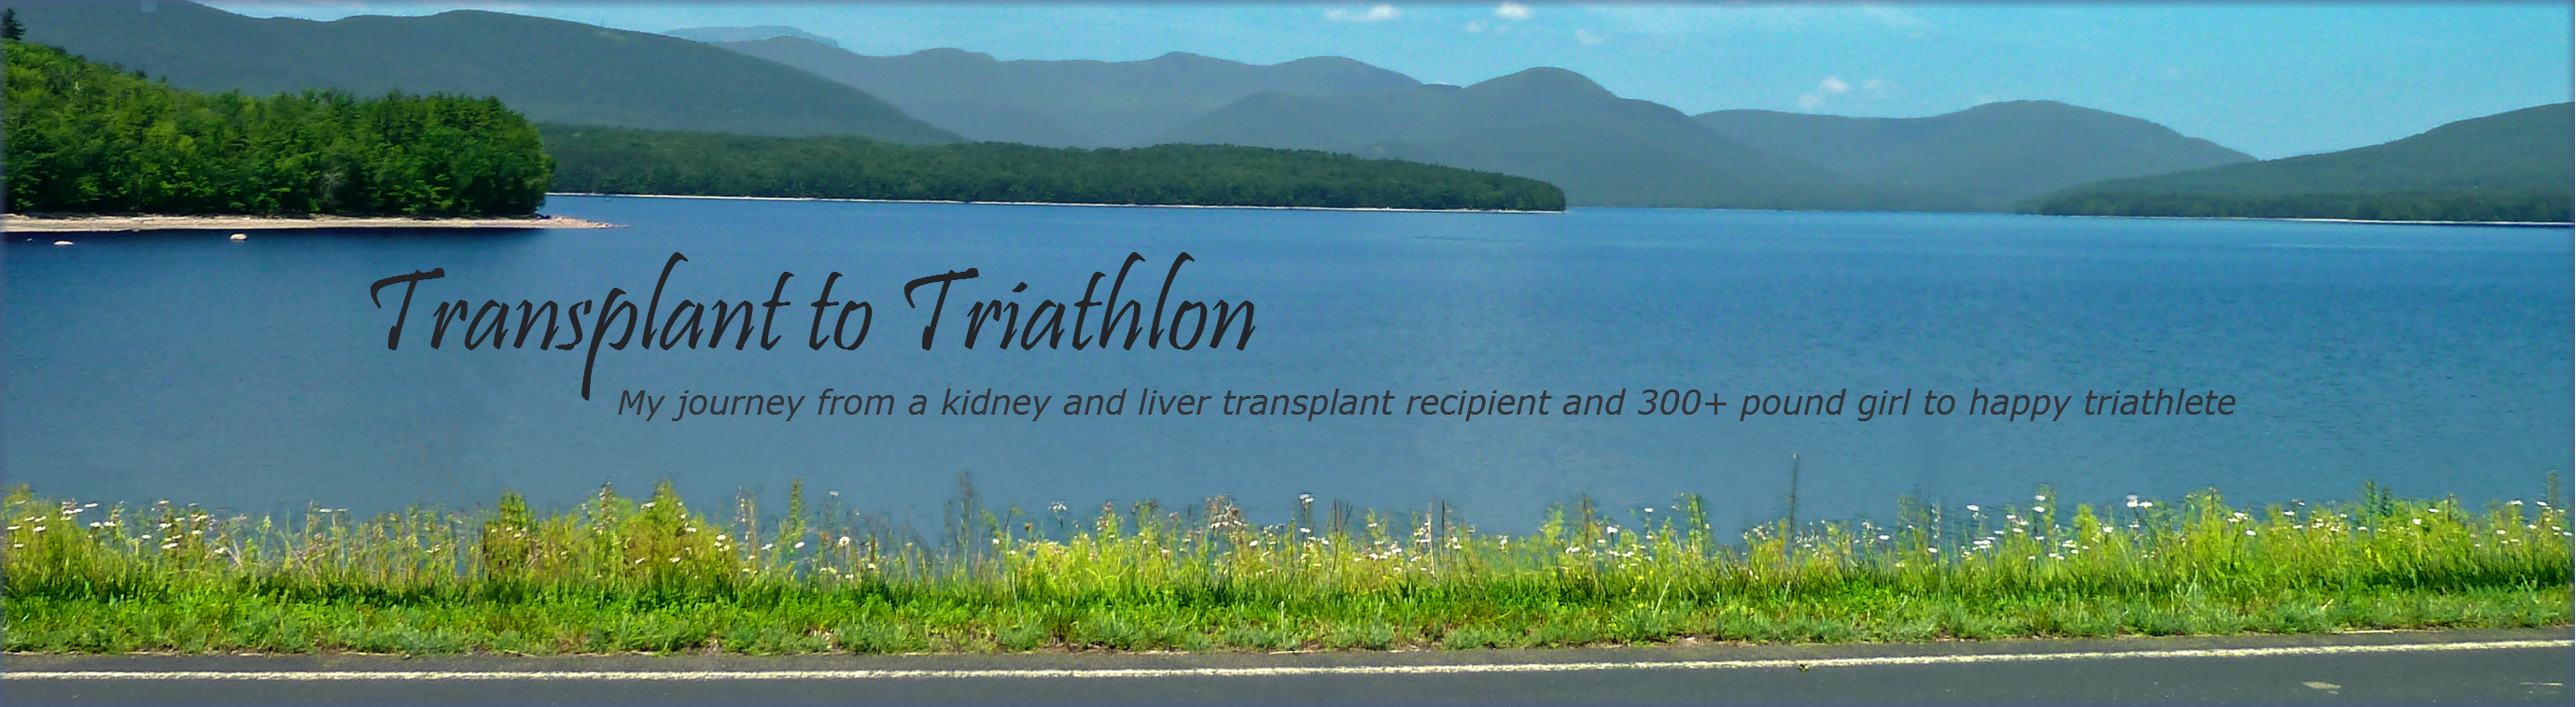 Transplant to Triathlon